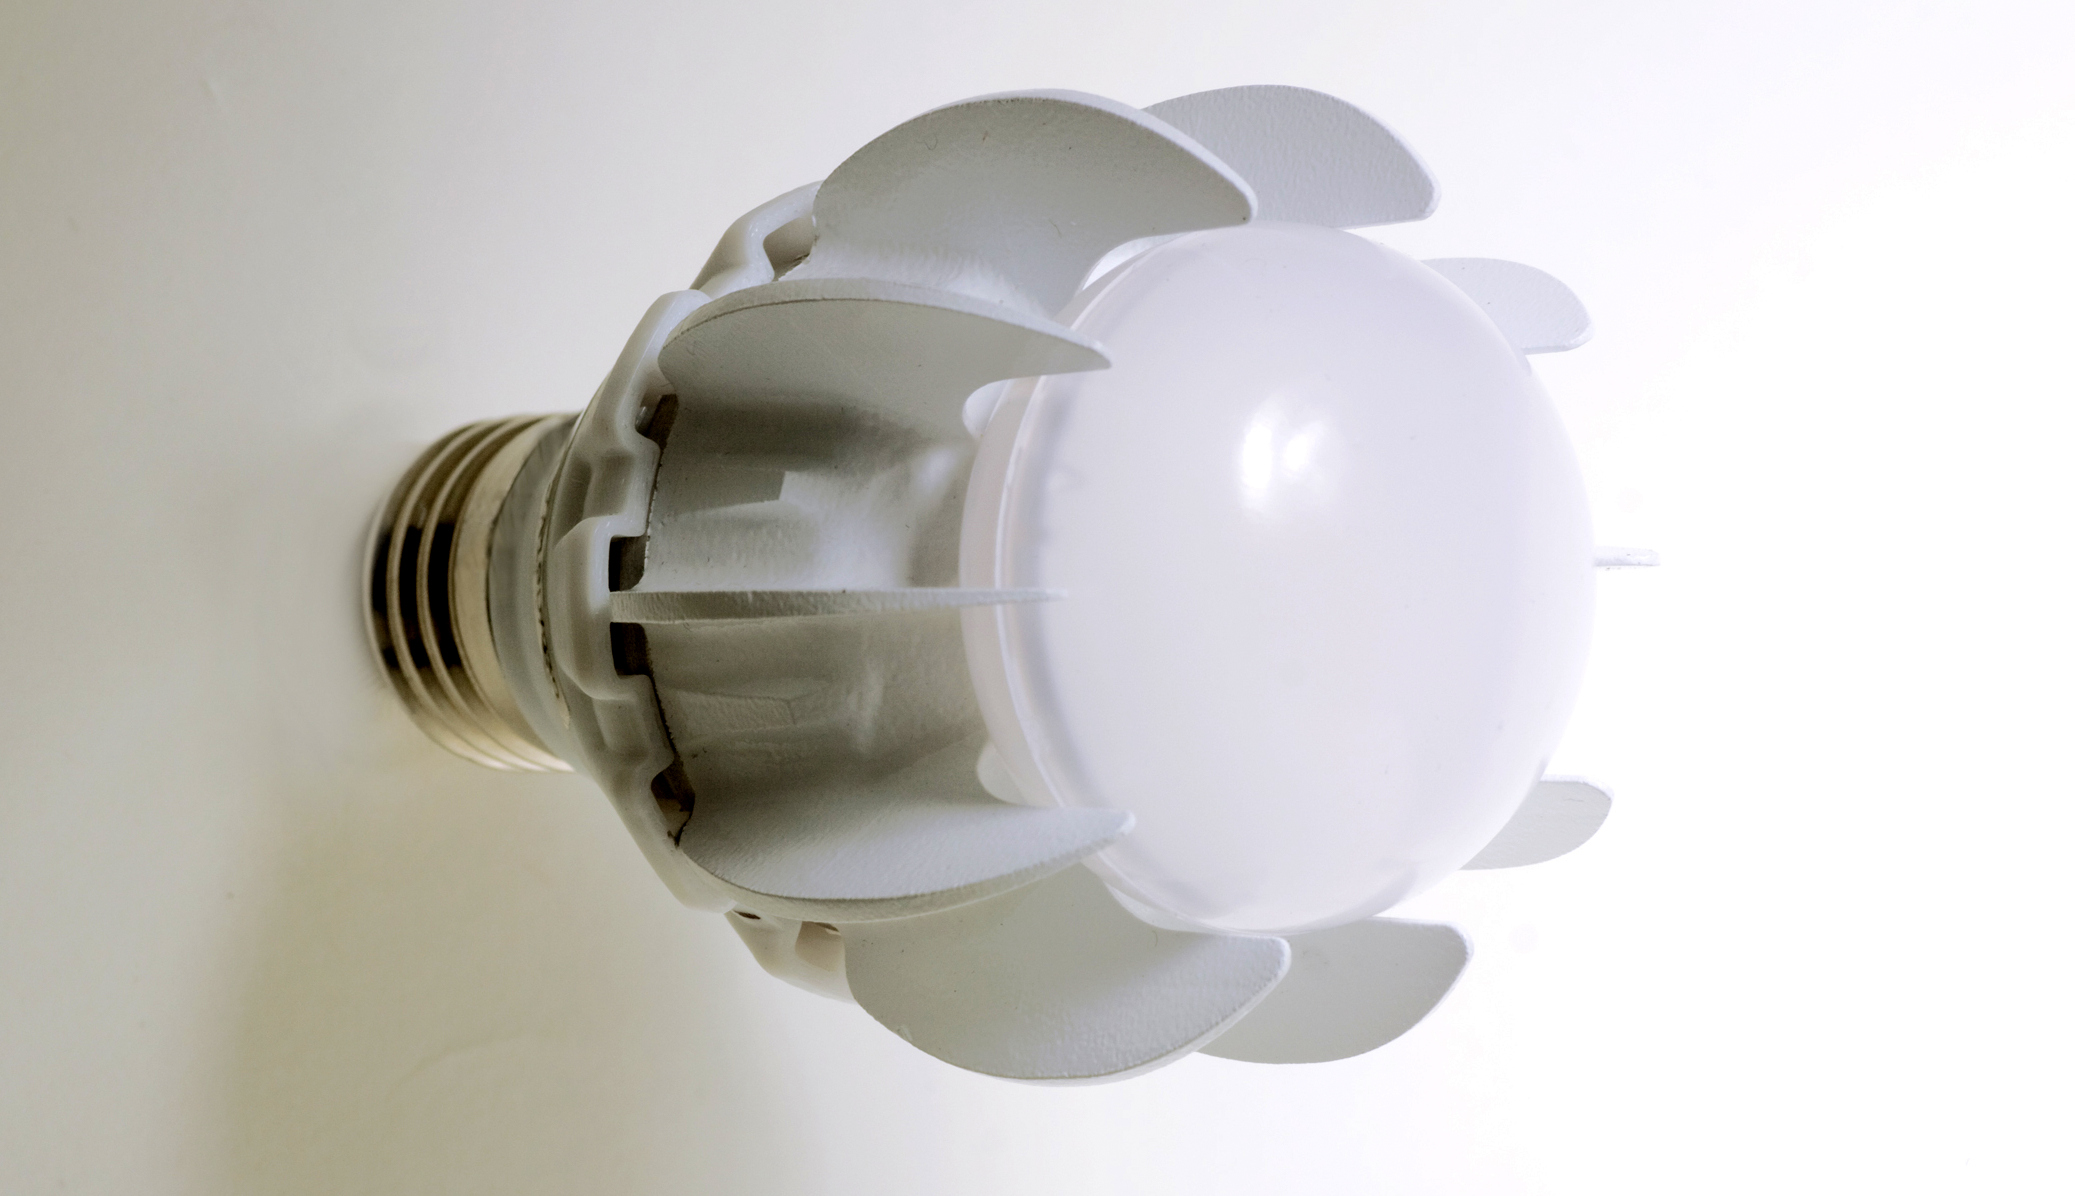 """Active cooling inside: GE's LED bulb has """"synthetic jet"""" technology to actively circulate air to cool LED chips."""